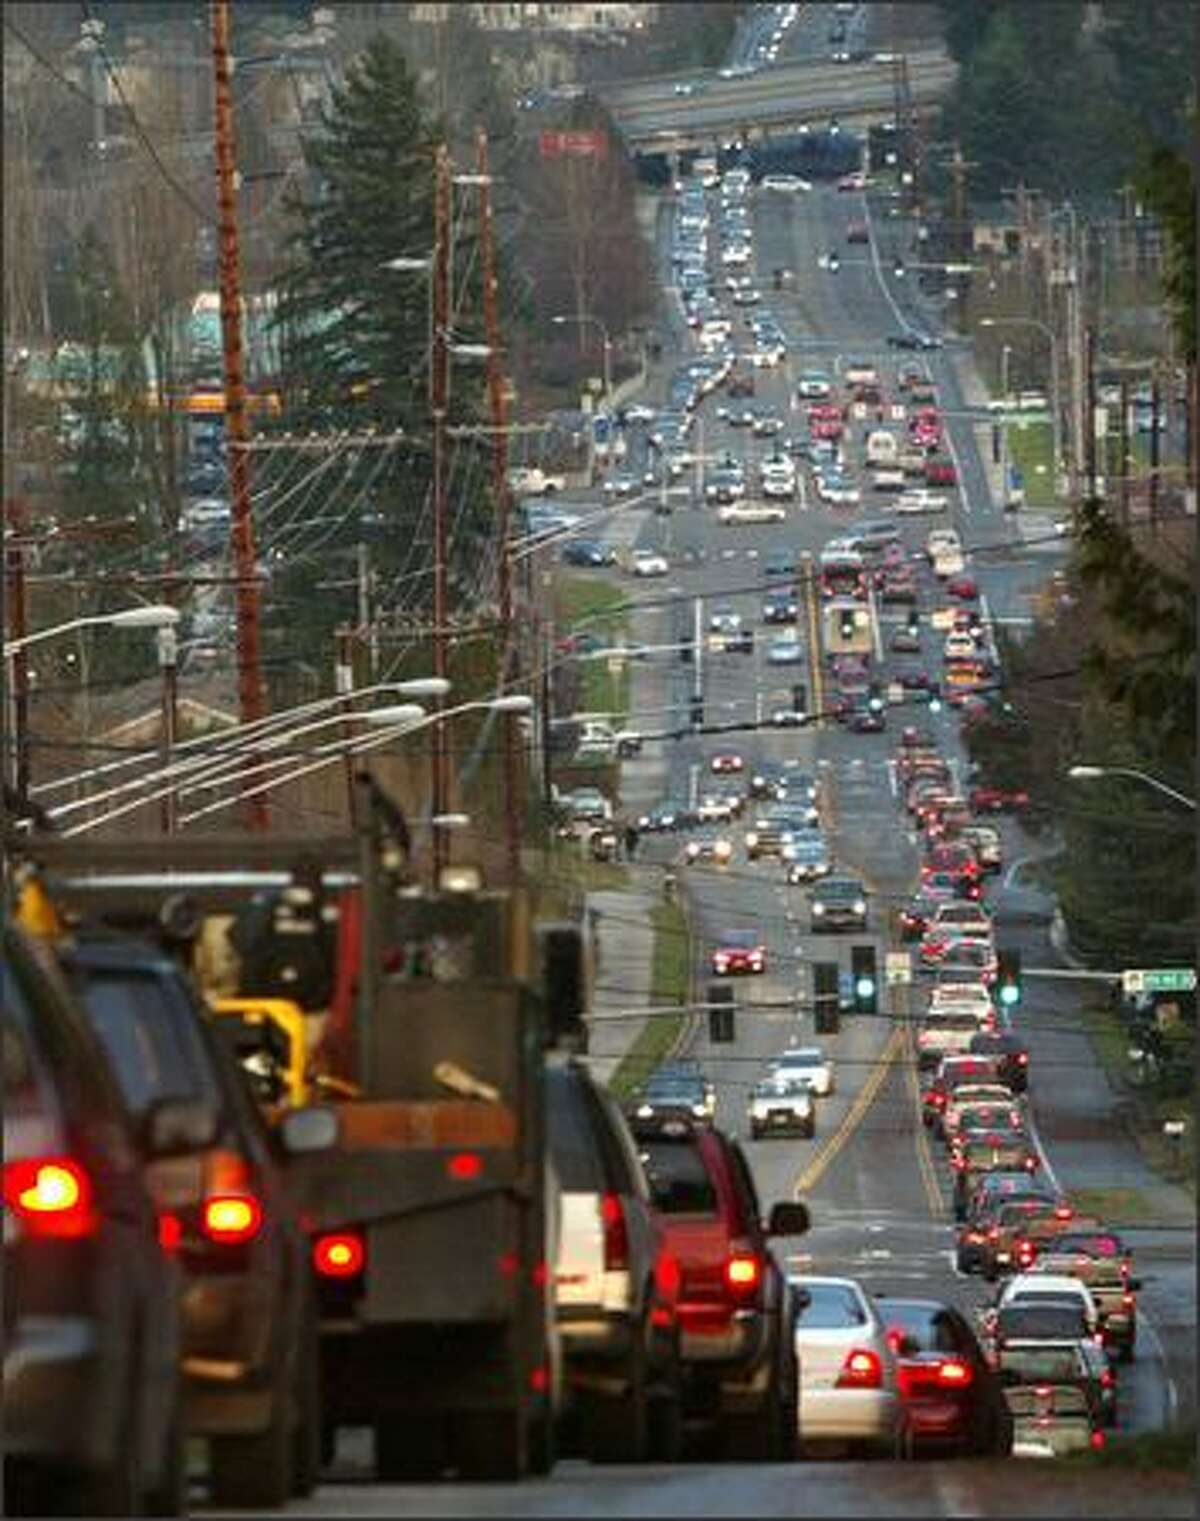 Traffic back up on roads in South Snohomish County Friday after winds downed trees and power lines throughout much of the area. Drivers trying to get around major backups clogged even minor streets and backgrounds. Seattle Post-Intelligencer / Grant M. Haller